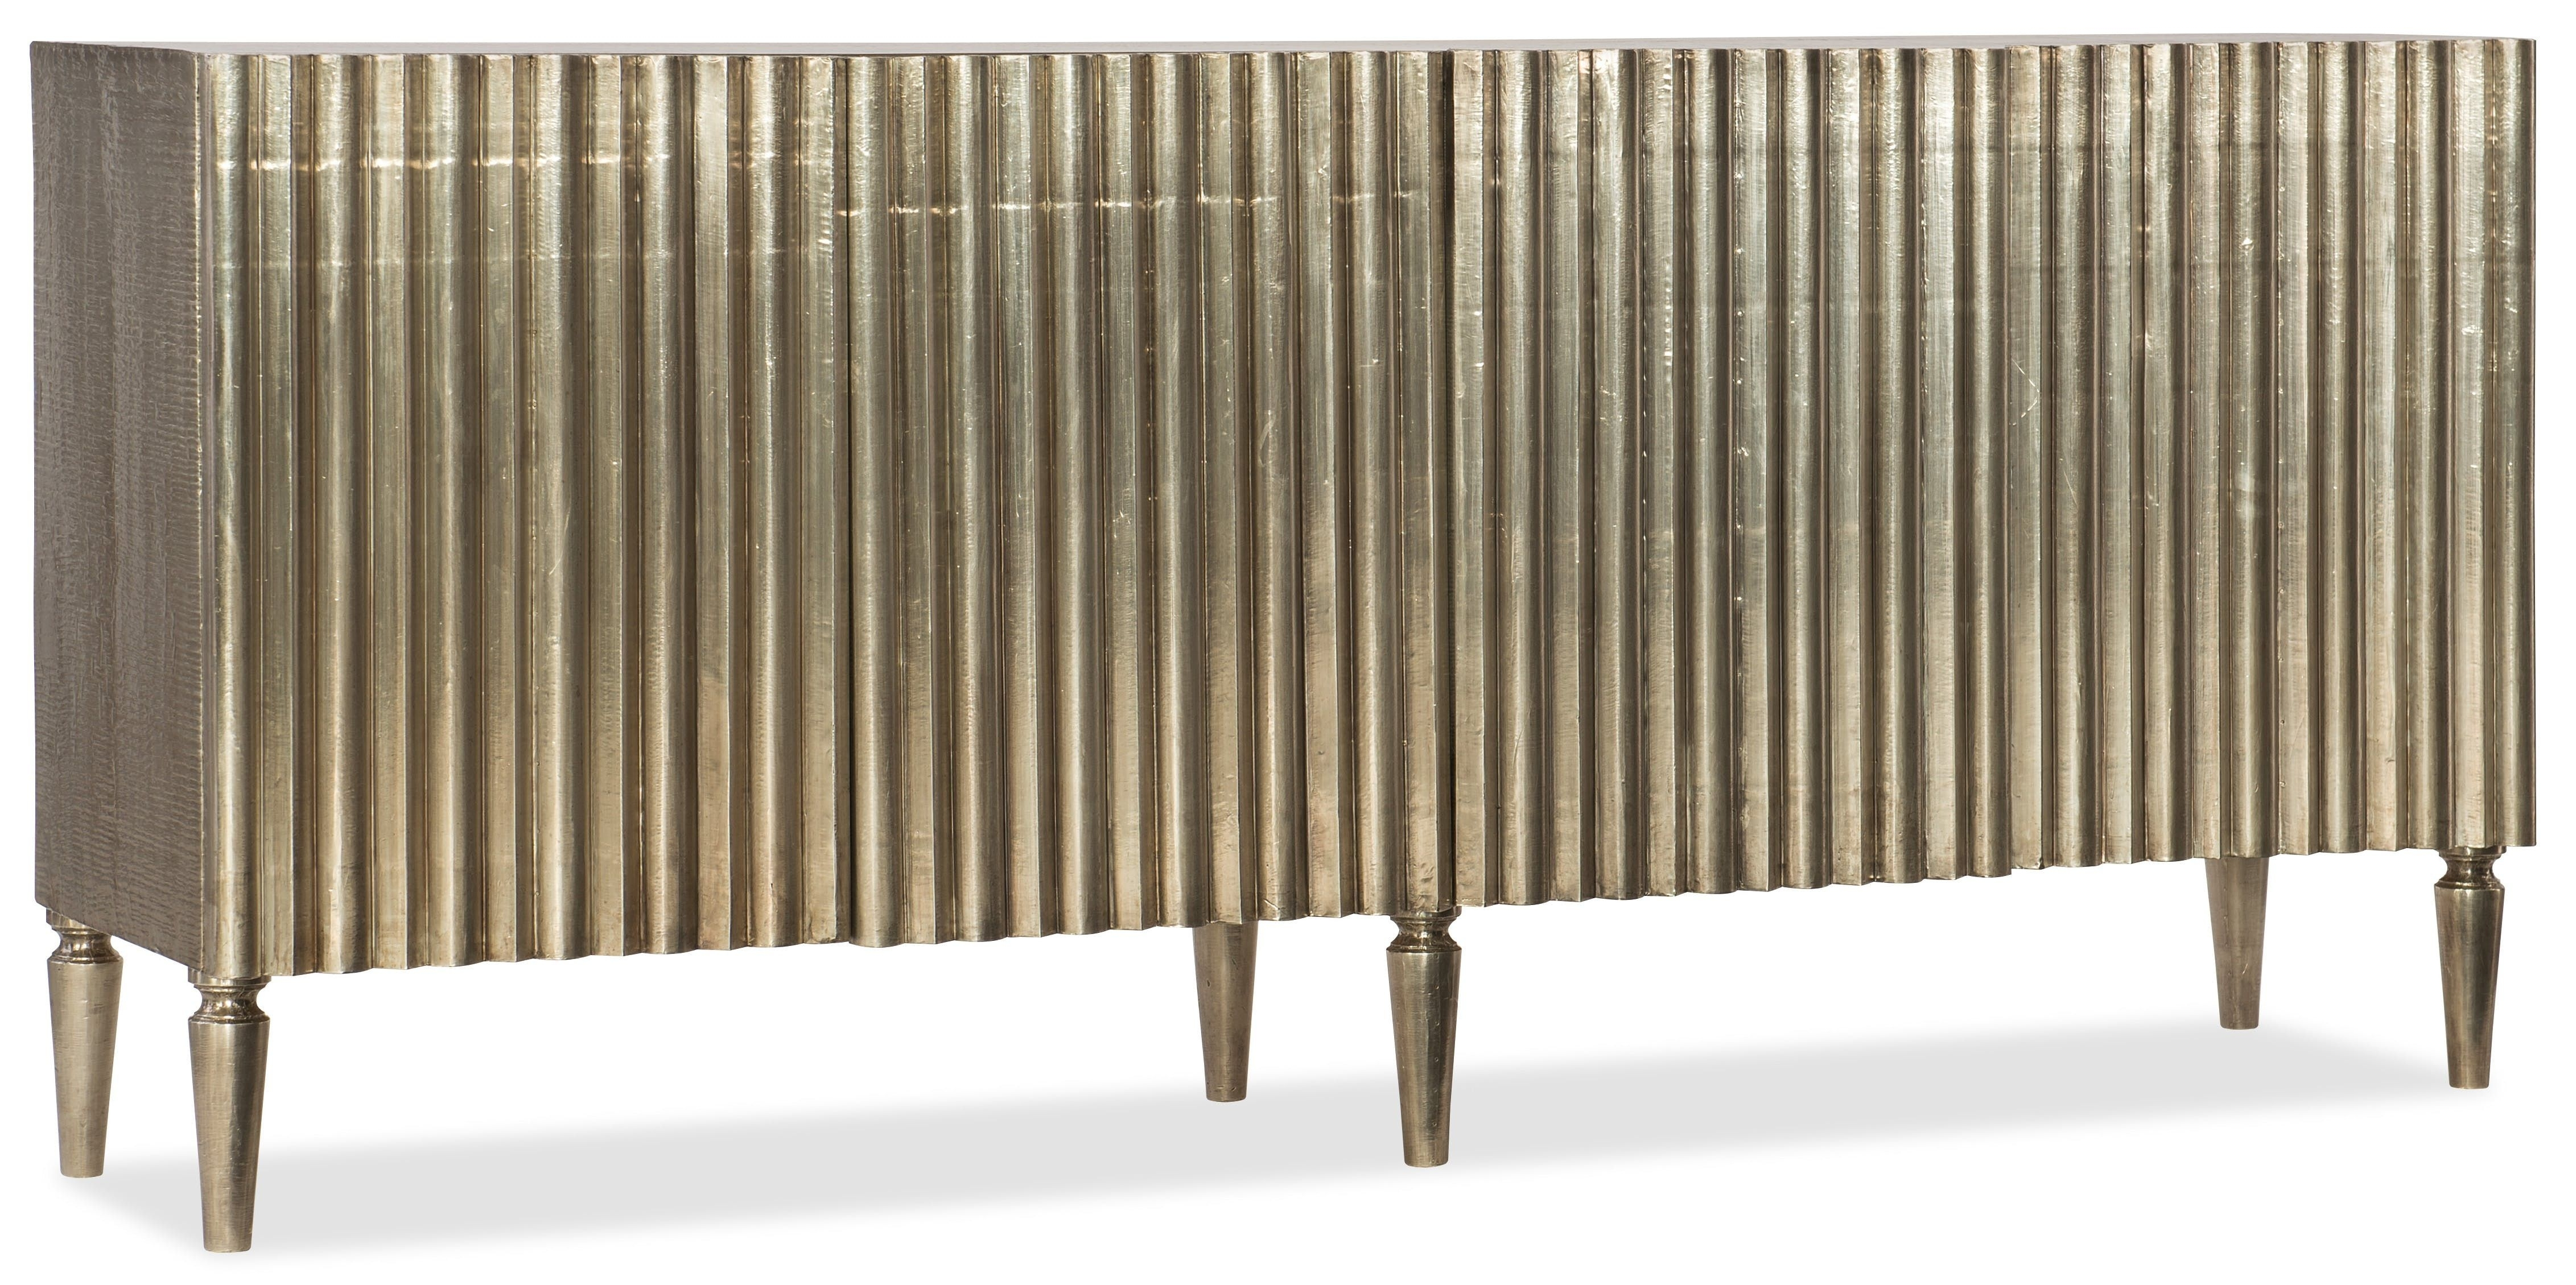 Looking For The Perfect Piece Of Jewelry For Your Room? Look No throughout Gunmetal Perforated Brass Sideboards (Image 24 of 30)